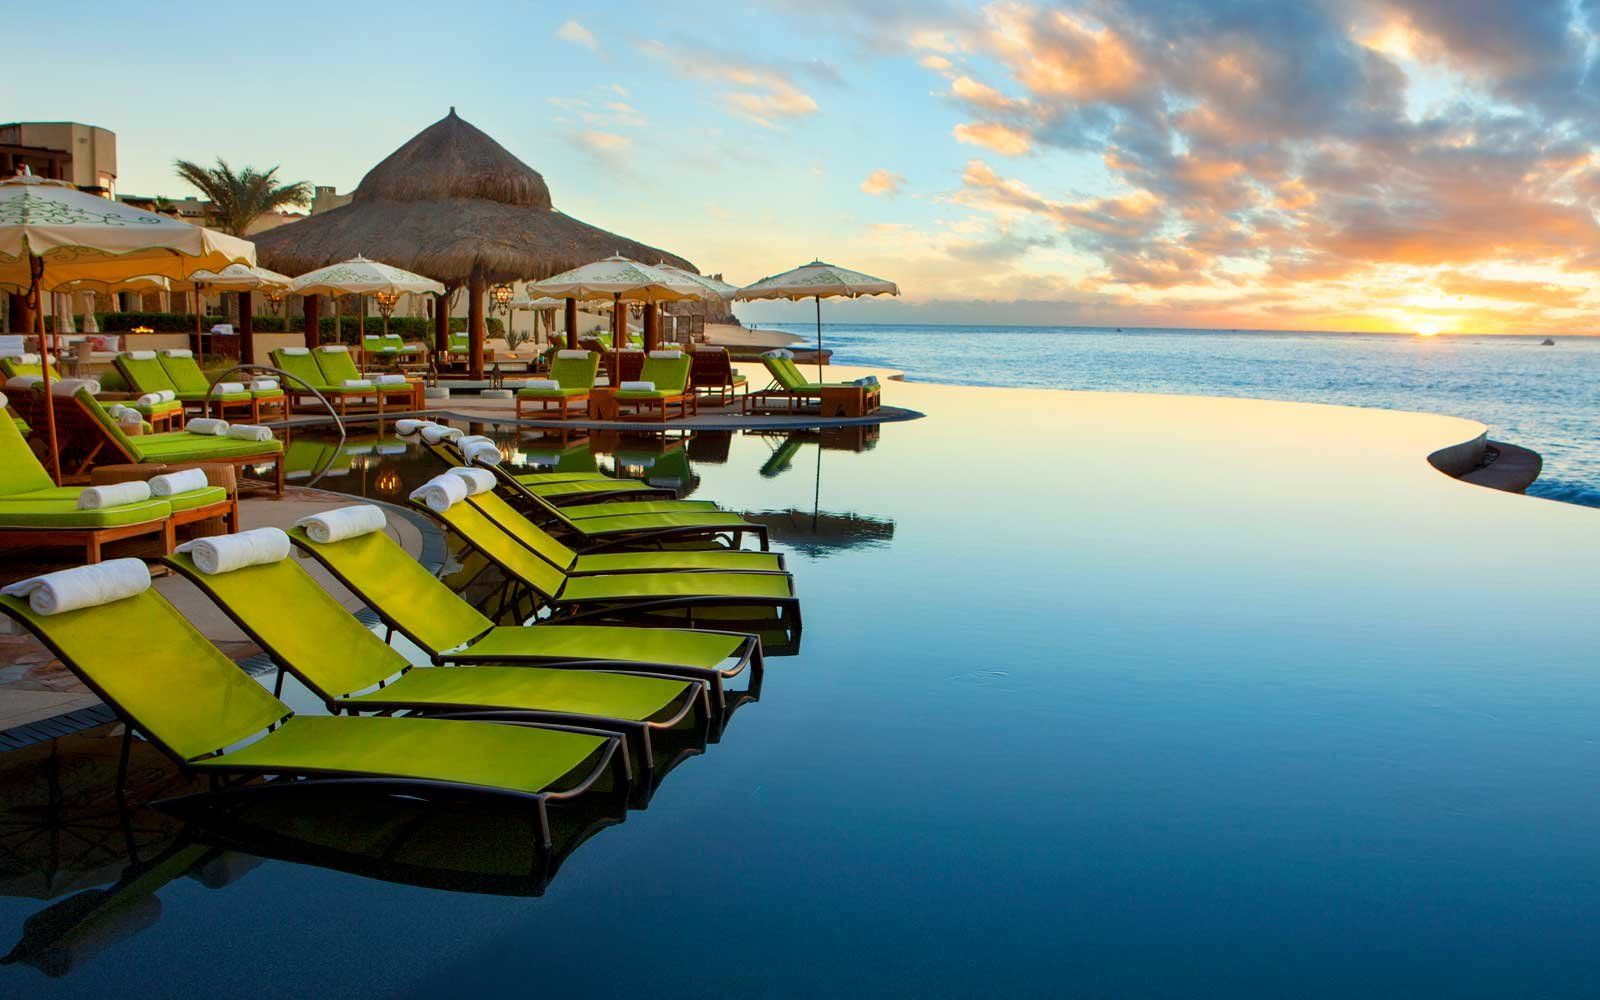 Resorts in Mexico World's Best 2019 is part of Mexico resorts, Cabo san lucas hotels, Travel and leisure, Mexico hotels, Resort, Destination spa - From the whitesand shores of the Riviera Maya to the cobalt waters of Los Cabos, these triedandtrue resorts stood out with Travel + Leisure readers as the best resorts in Mexico